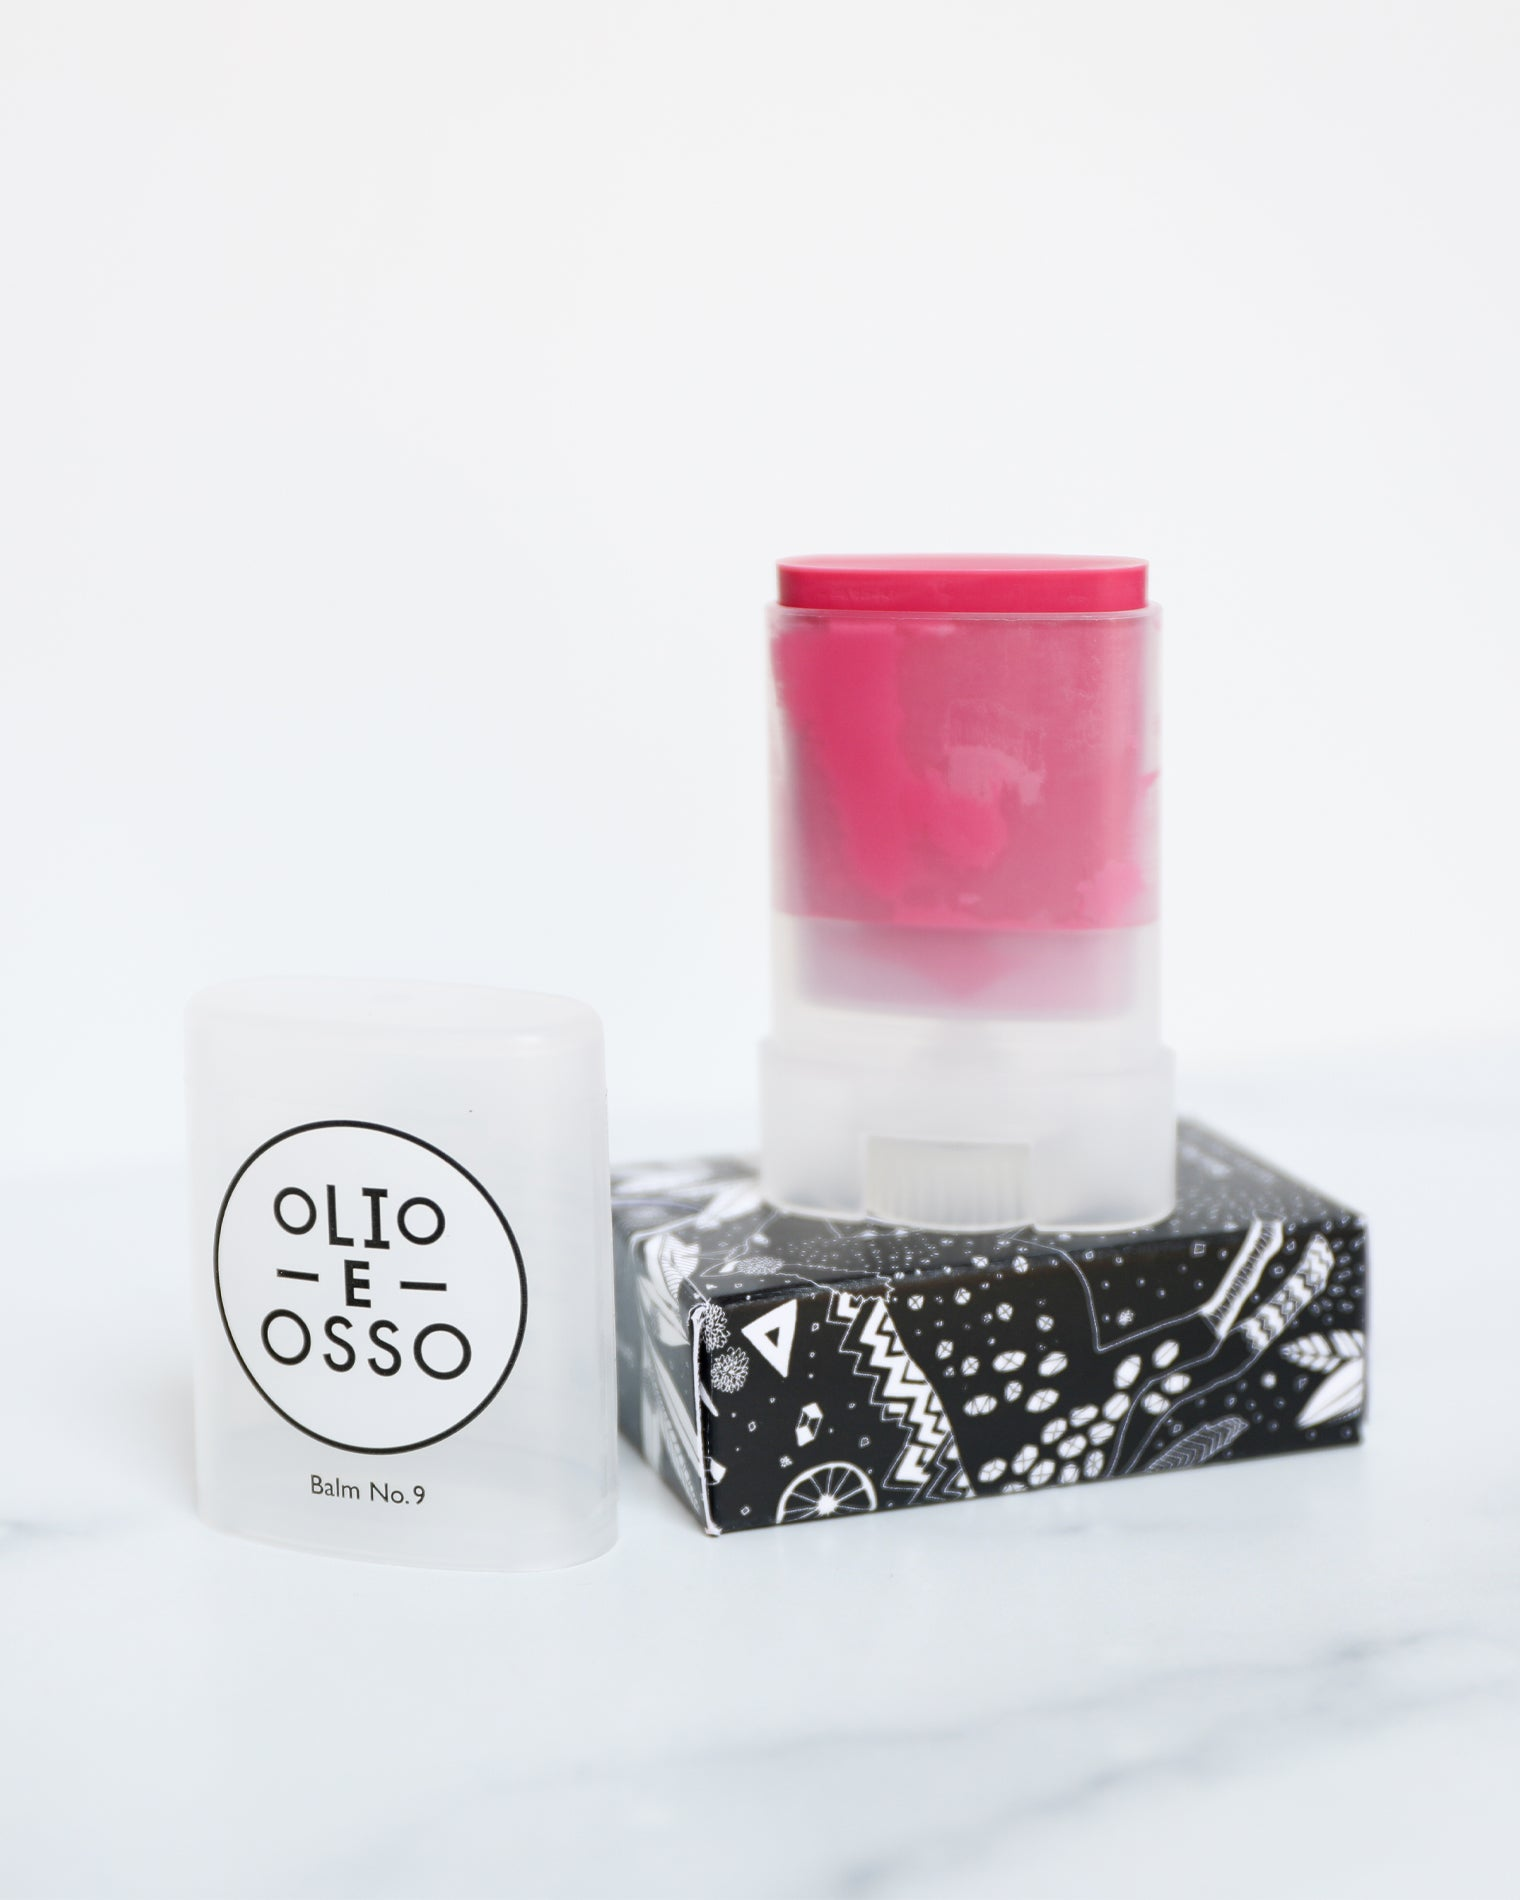 OLIO E OSSO LIP + CHEEK BALM NO.9